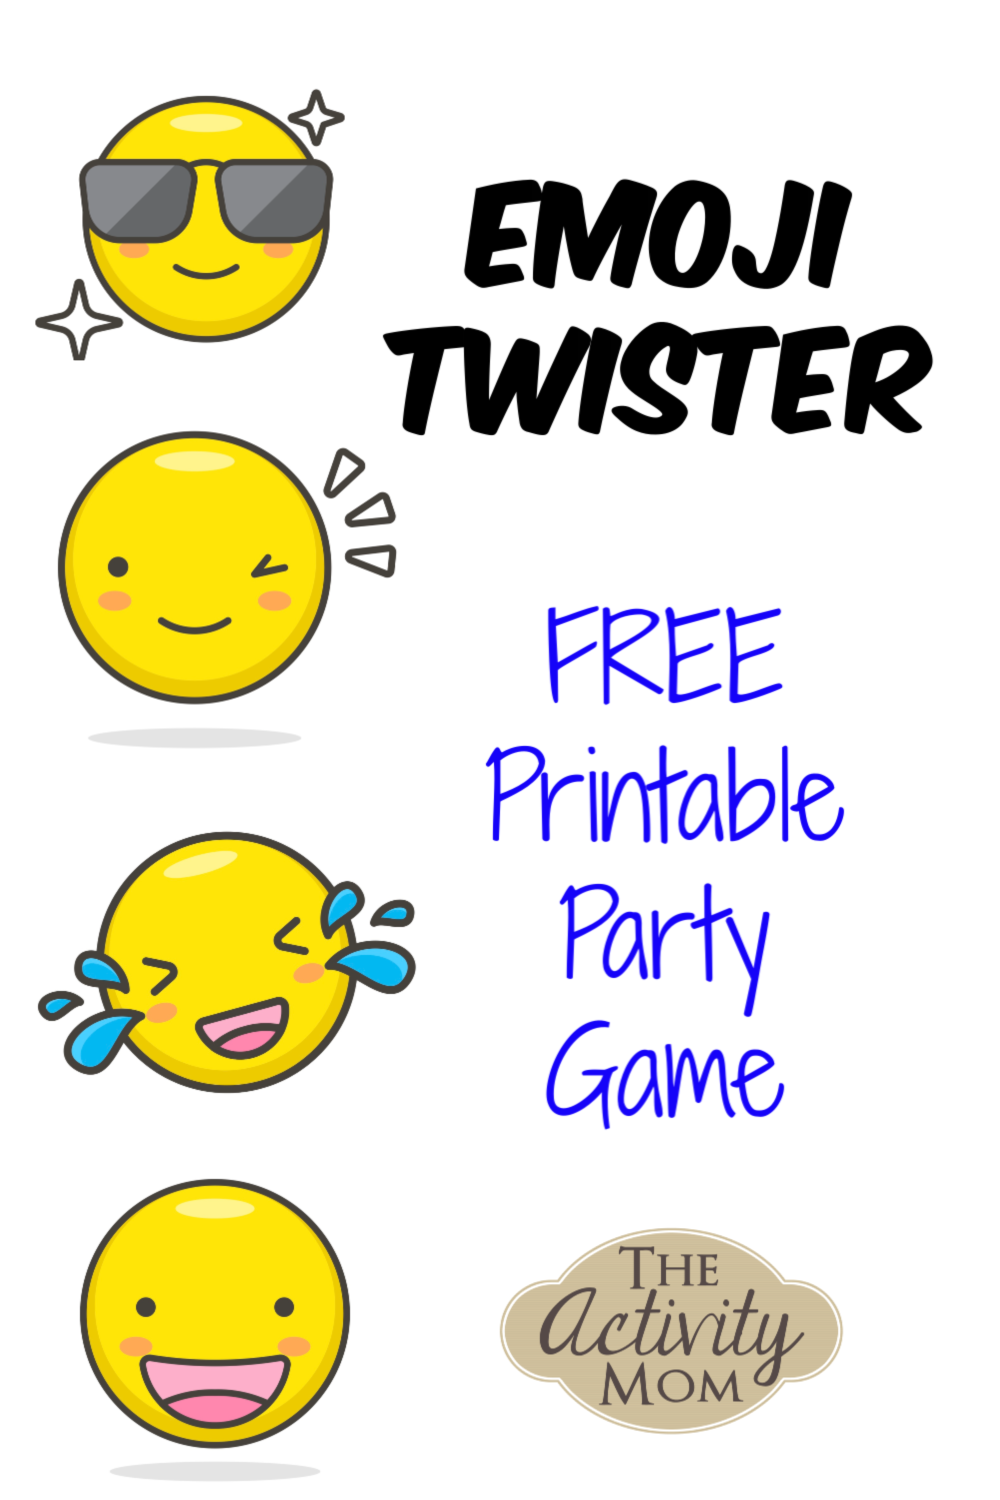 photo regarding Finger Twister Printable named The Game Mother - Emoji Twister Occasion Sport - The Sport Mother